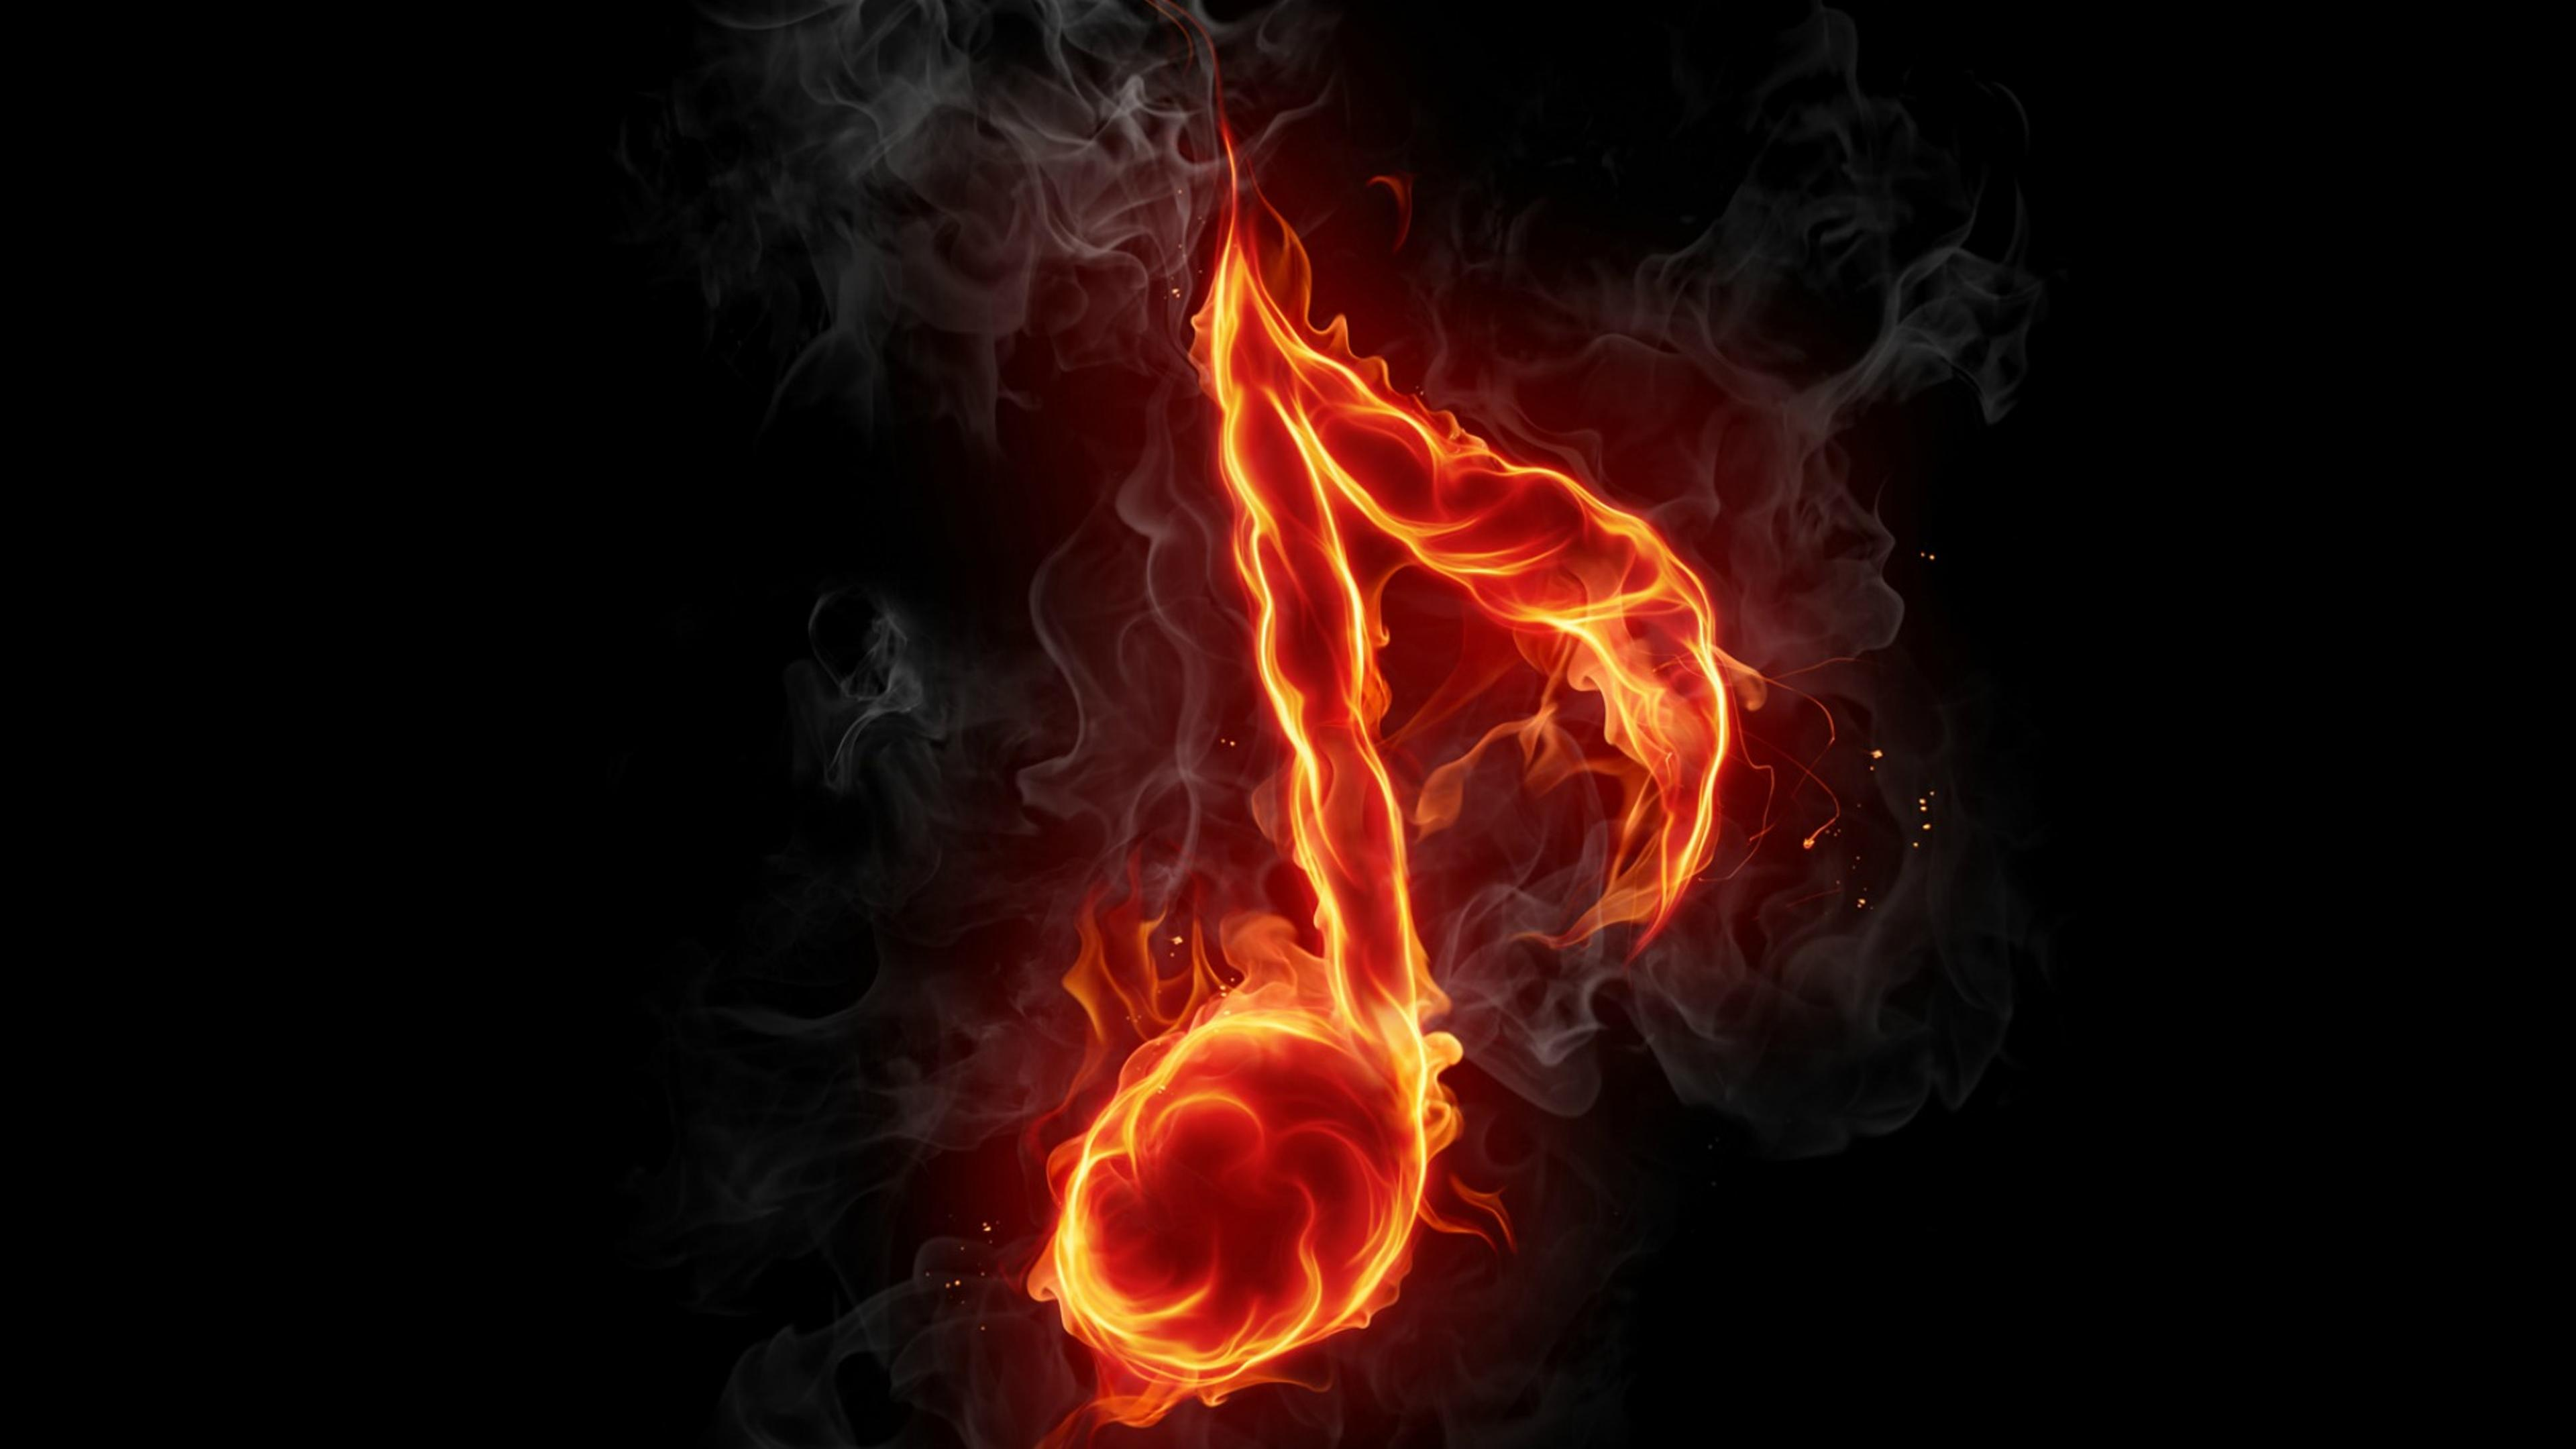 A Musical Note In Flames On The Black Background Wallpaper Download 3840x2160